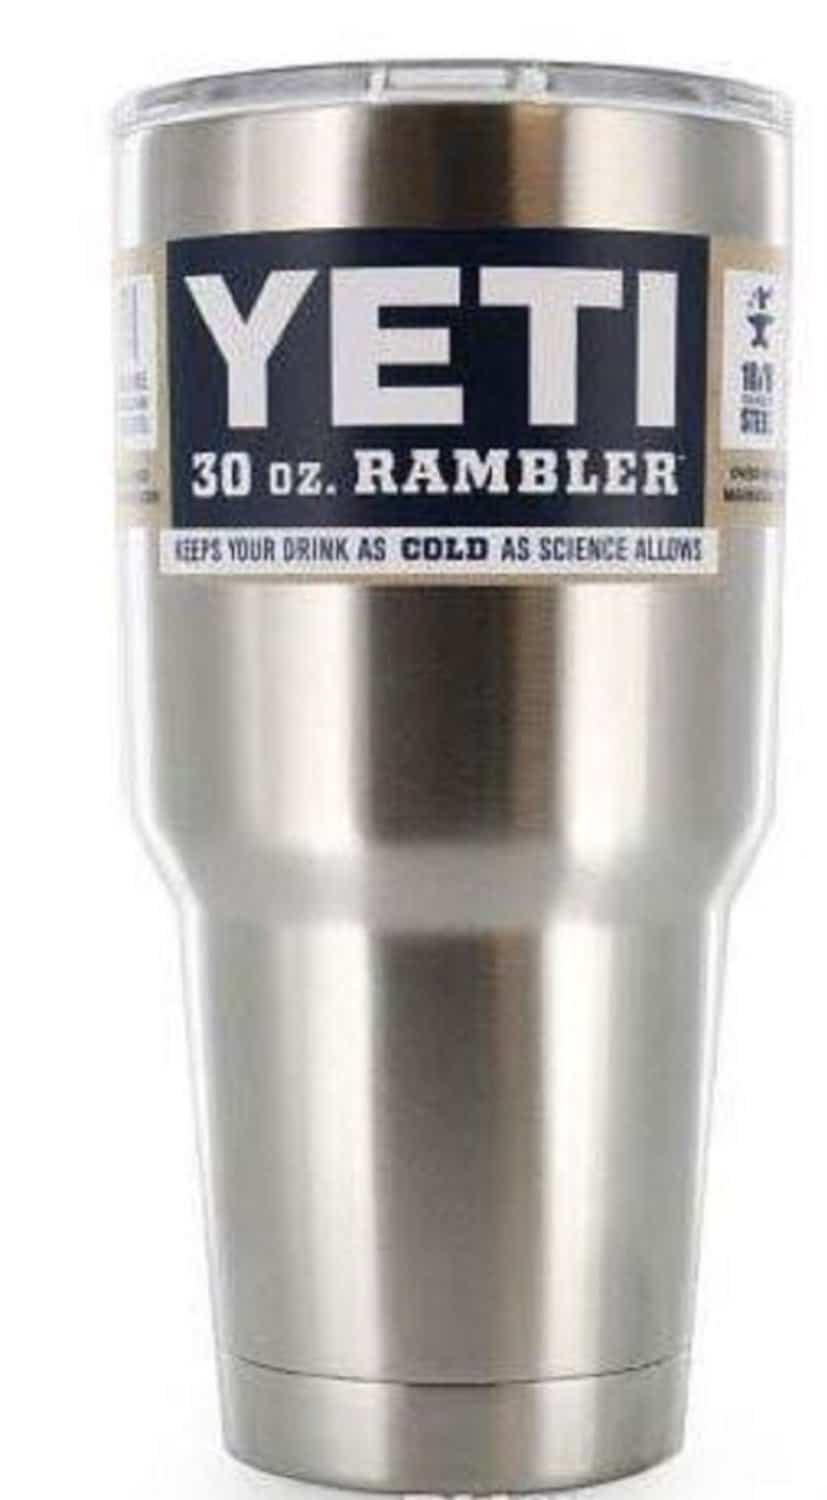 YETI Rambler 30 oz Tumbler – LOWEST PRICE!!